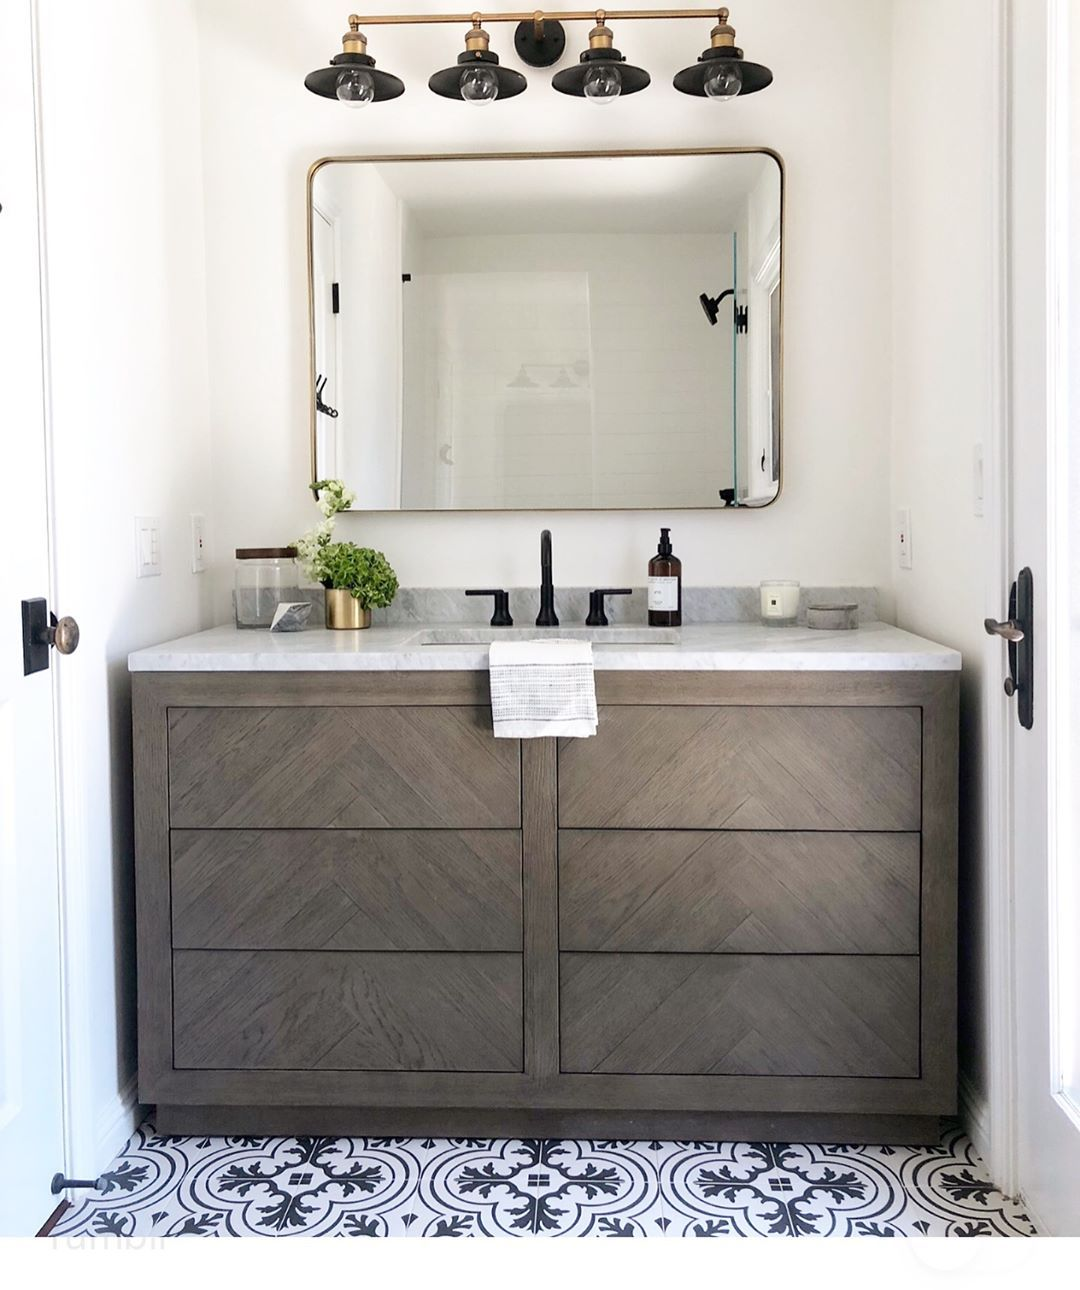 Eye For Pretty On Instagram When The Pre Fab Is Straight Up Just Fab Swipe To See How This Rh Vanity Changed The Entire Look Of This Cute Little Ki Boy Bath